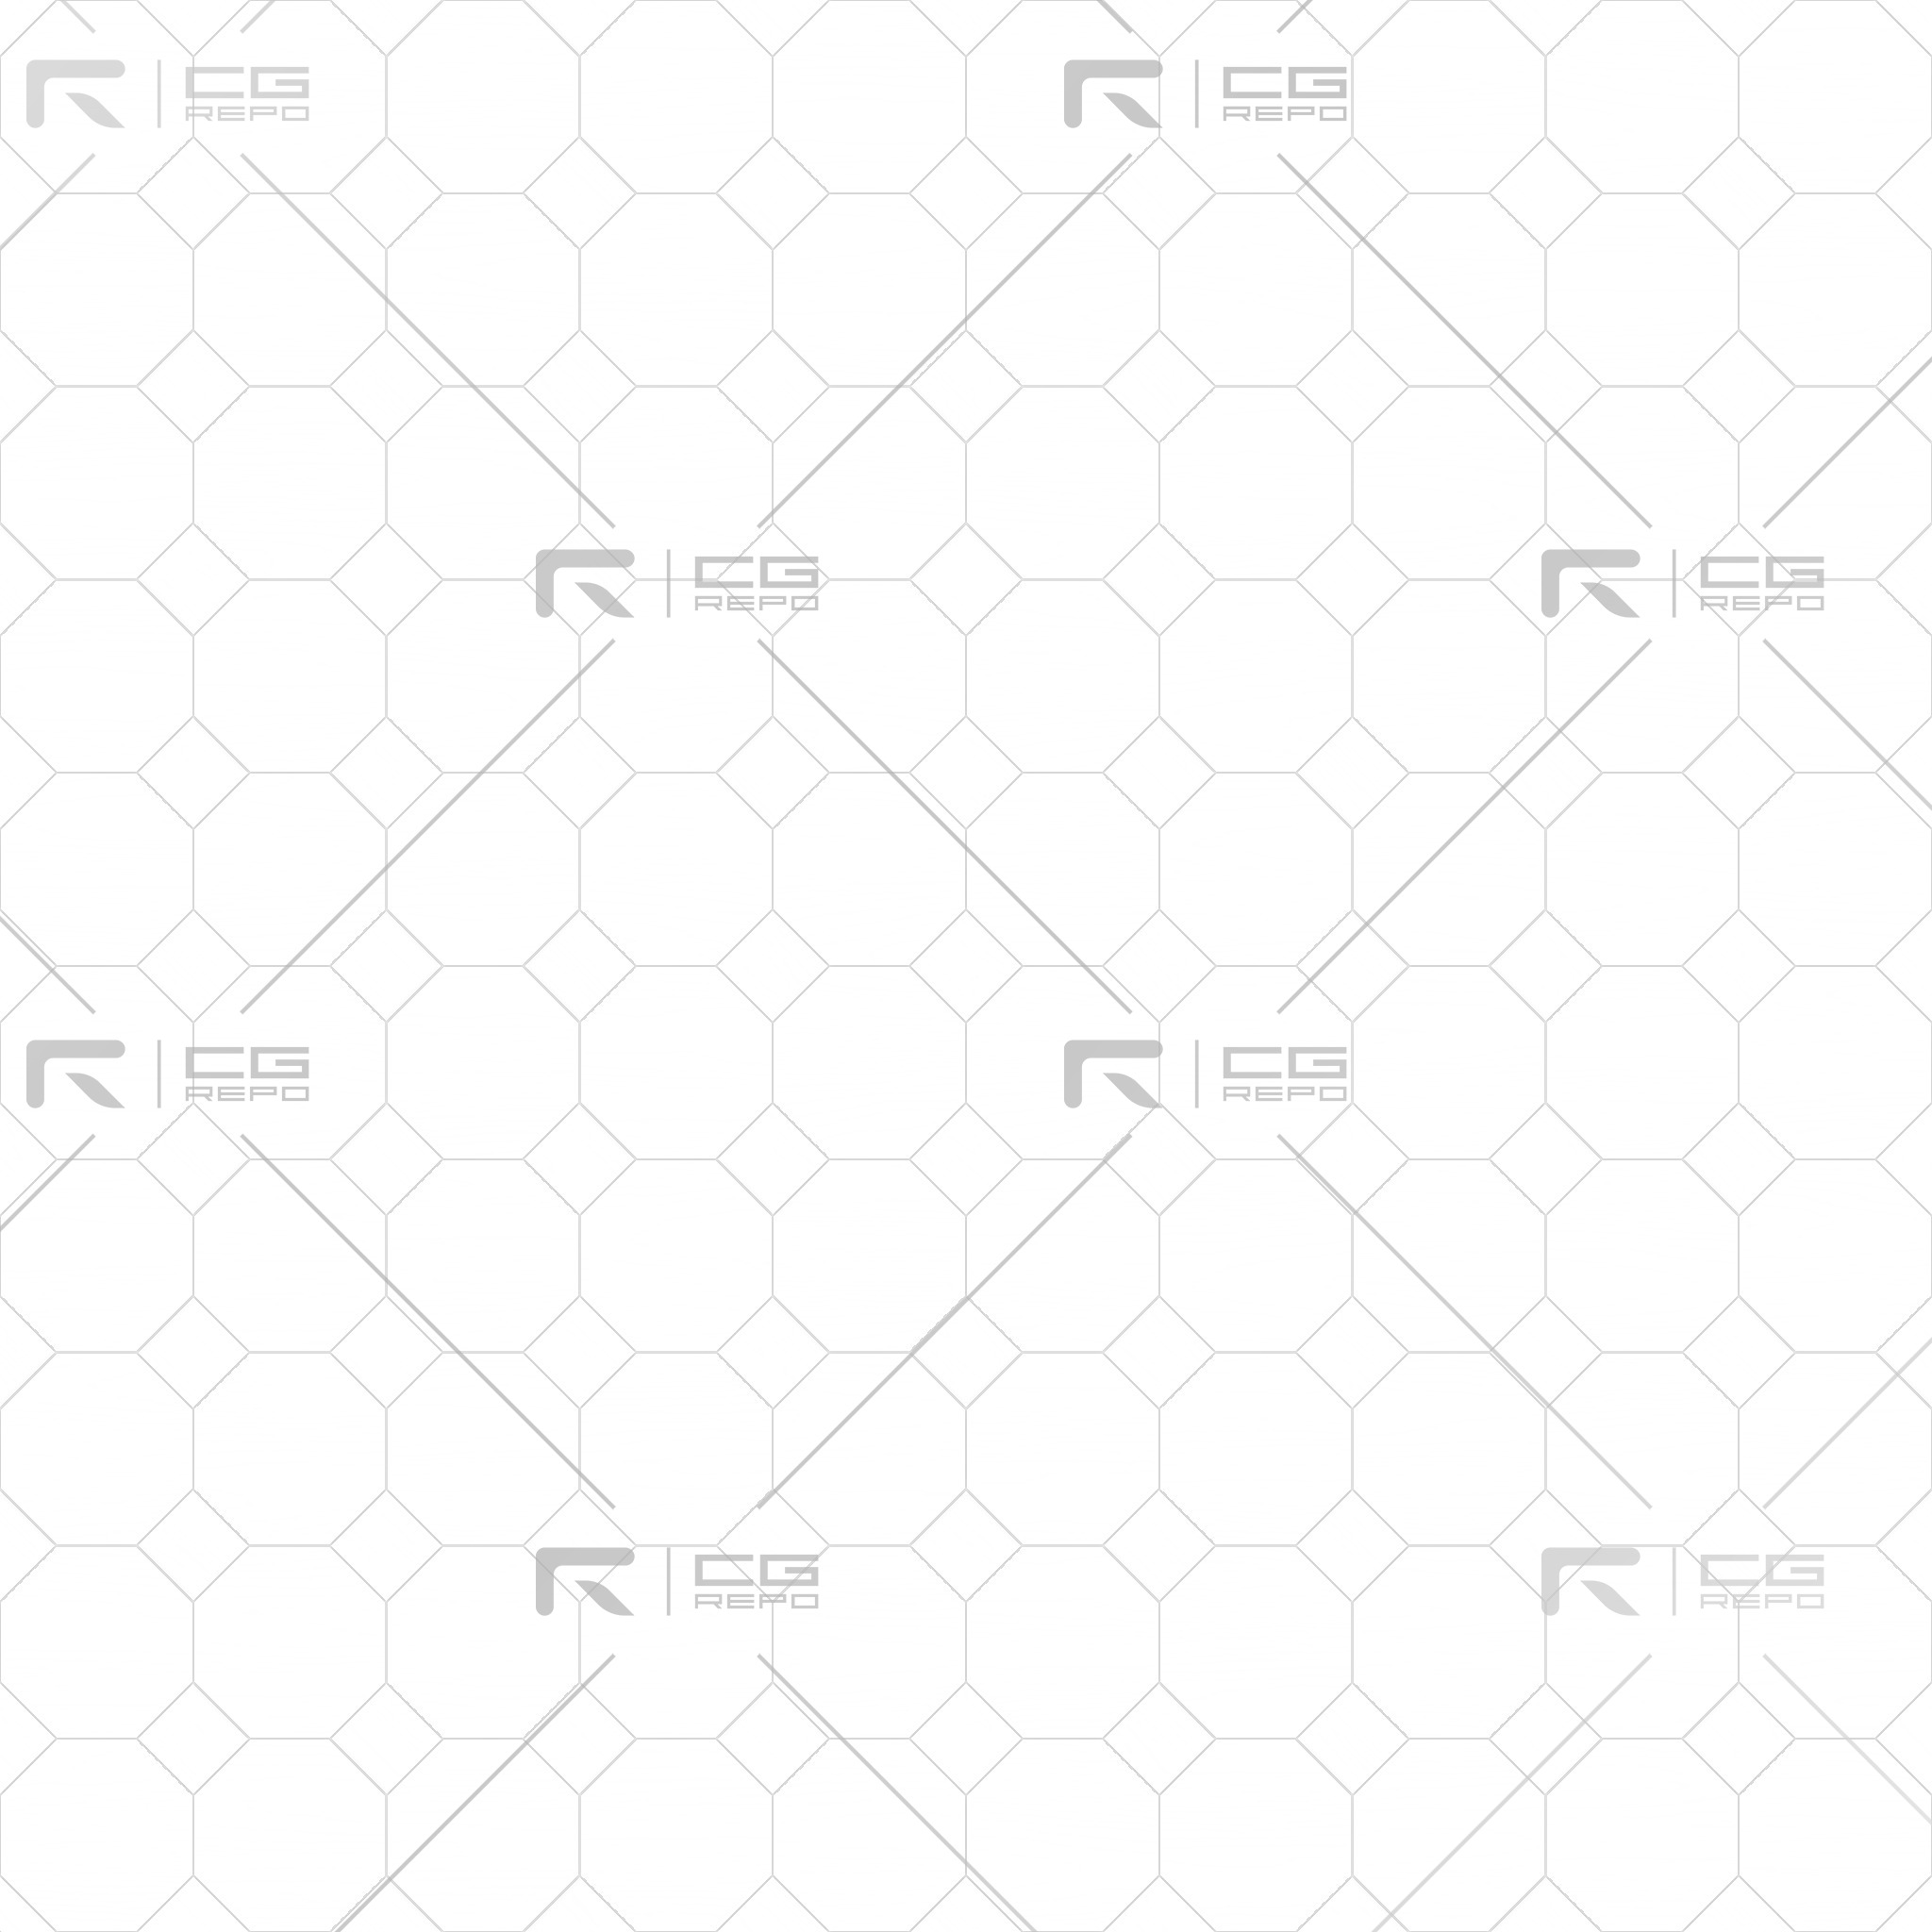 Ash White Octagons Ambient Occlusion Texture